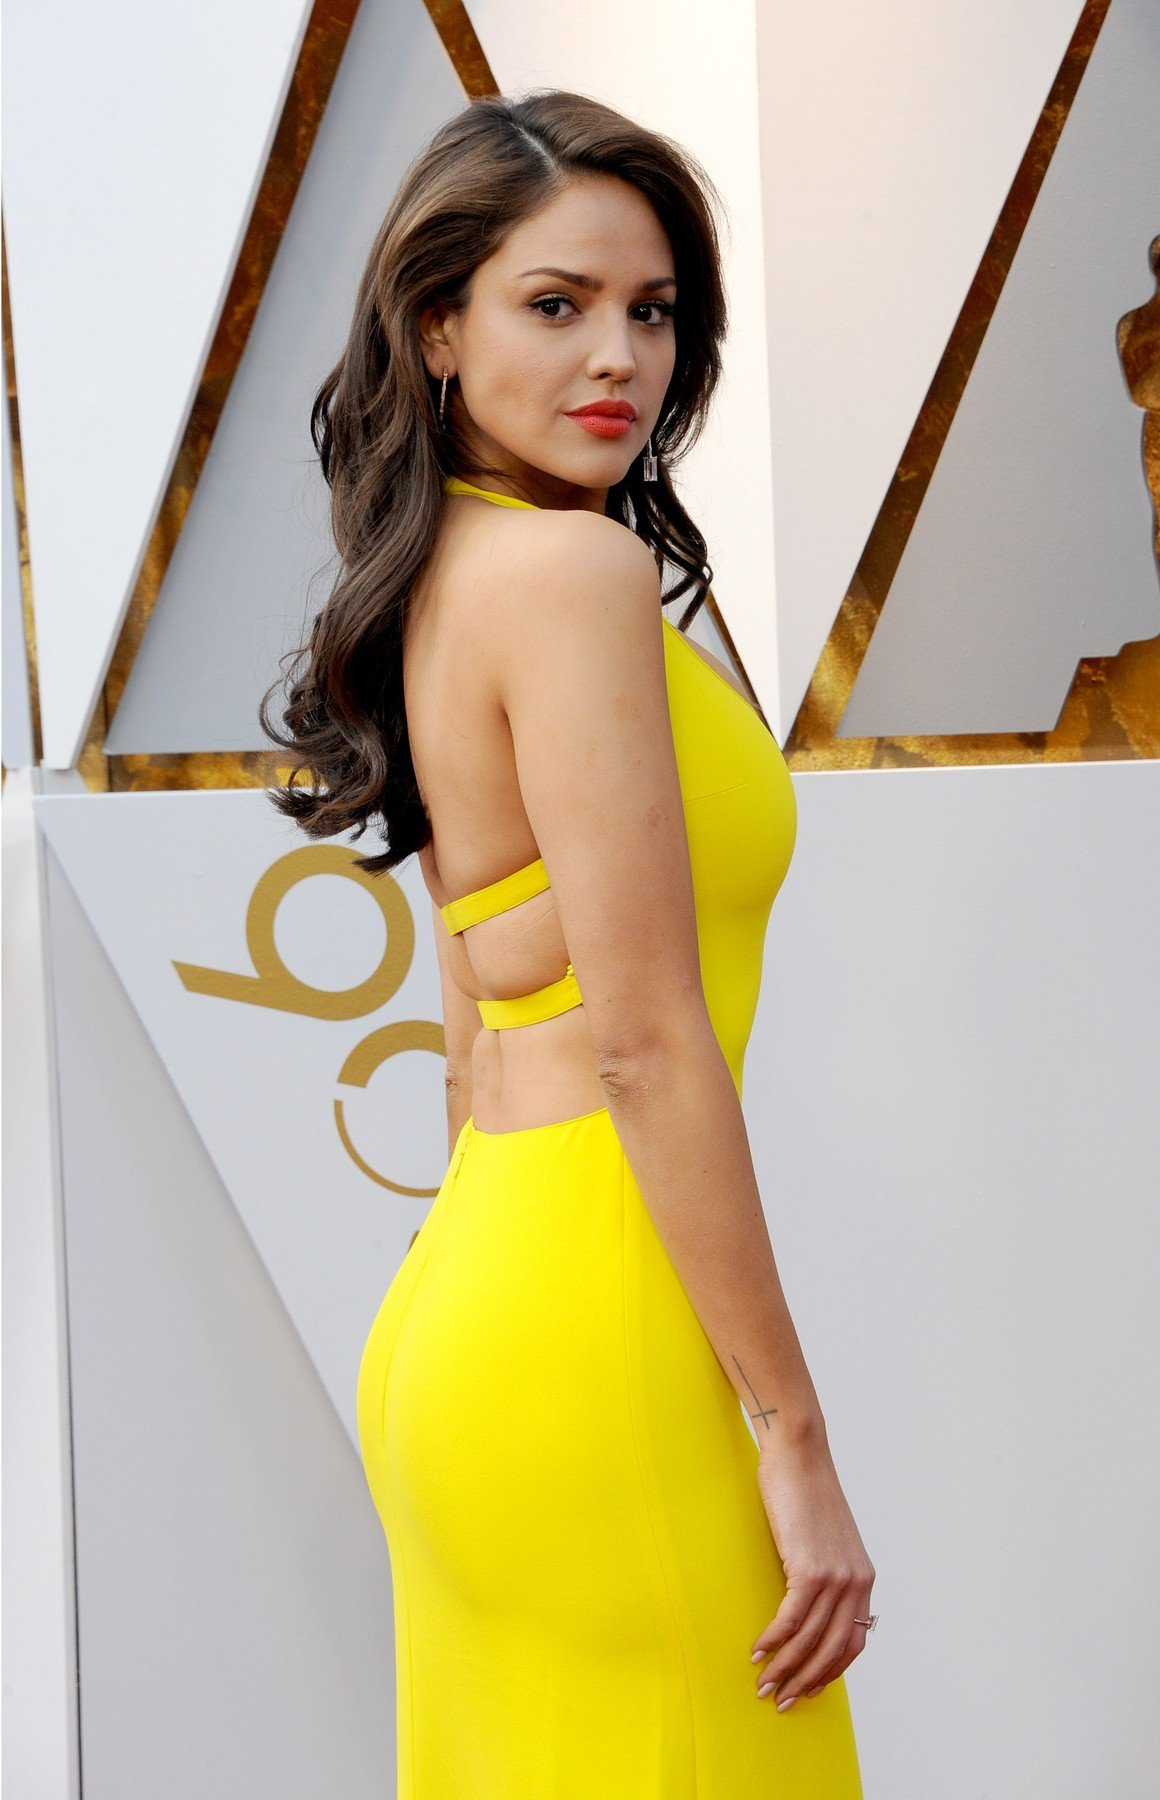 Eiza Gonzalez at arrivals for The 90th Academy Awards - Arrivals, The Dolby Theatre at Hollywood and Highland Center, Los Angeles, CA March 4, 2018., Image: 365051426, License: Rights-managed, Restrictions: For usage credit please use; Elizabeth Goodenough/Everett Collection, Model Release: no, Credit line: Profimedia, Everett